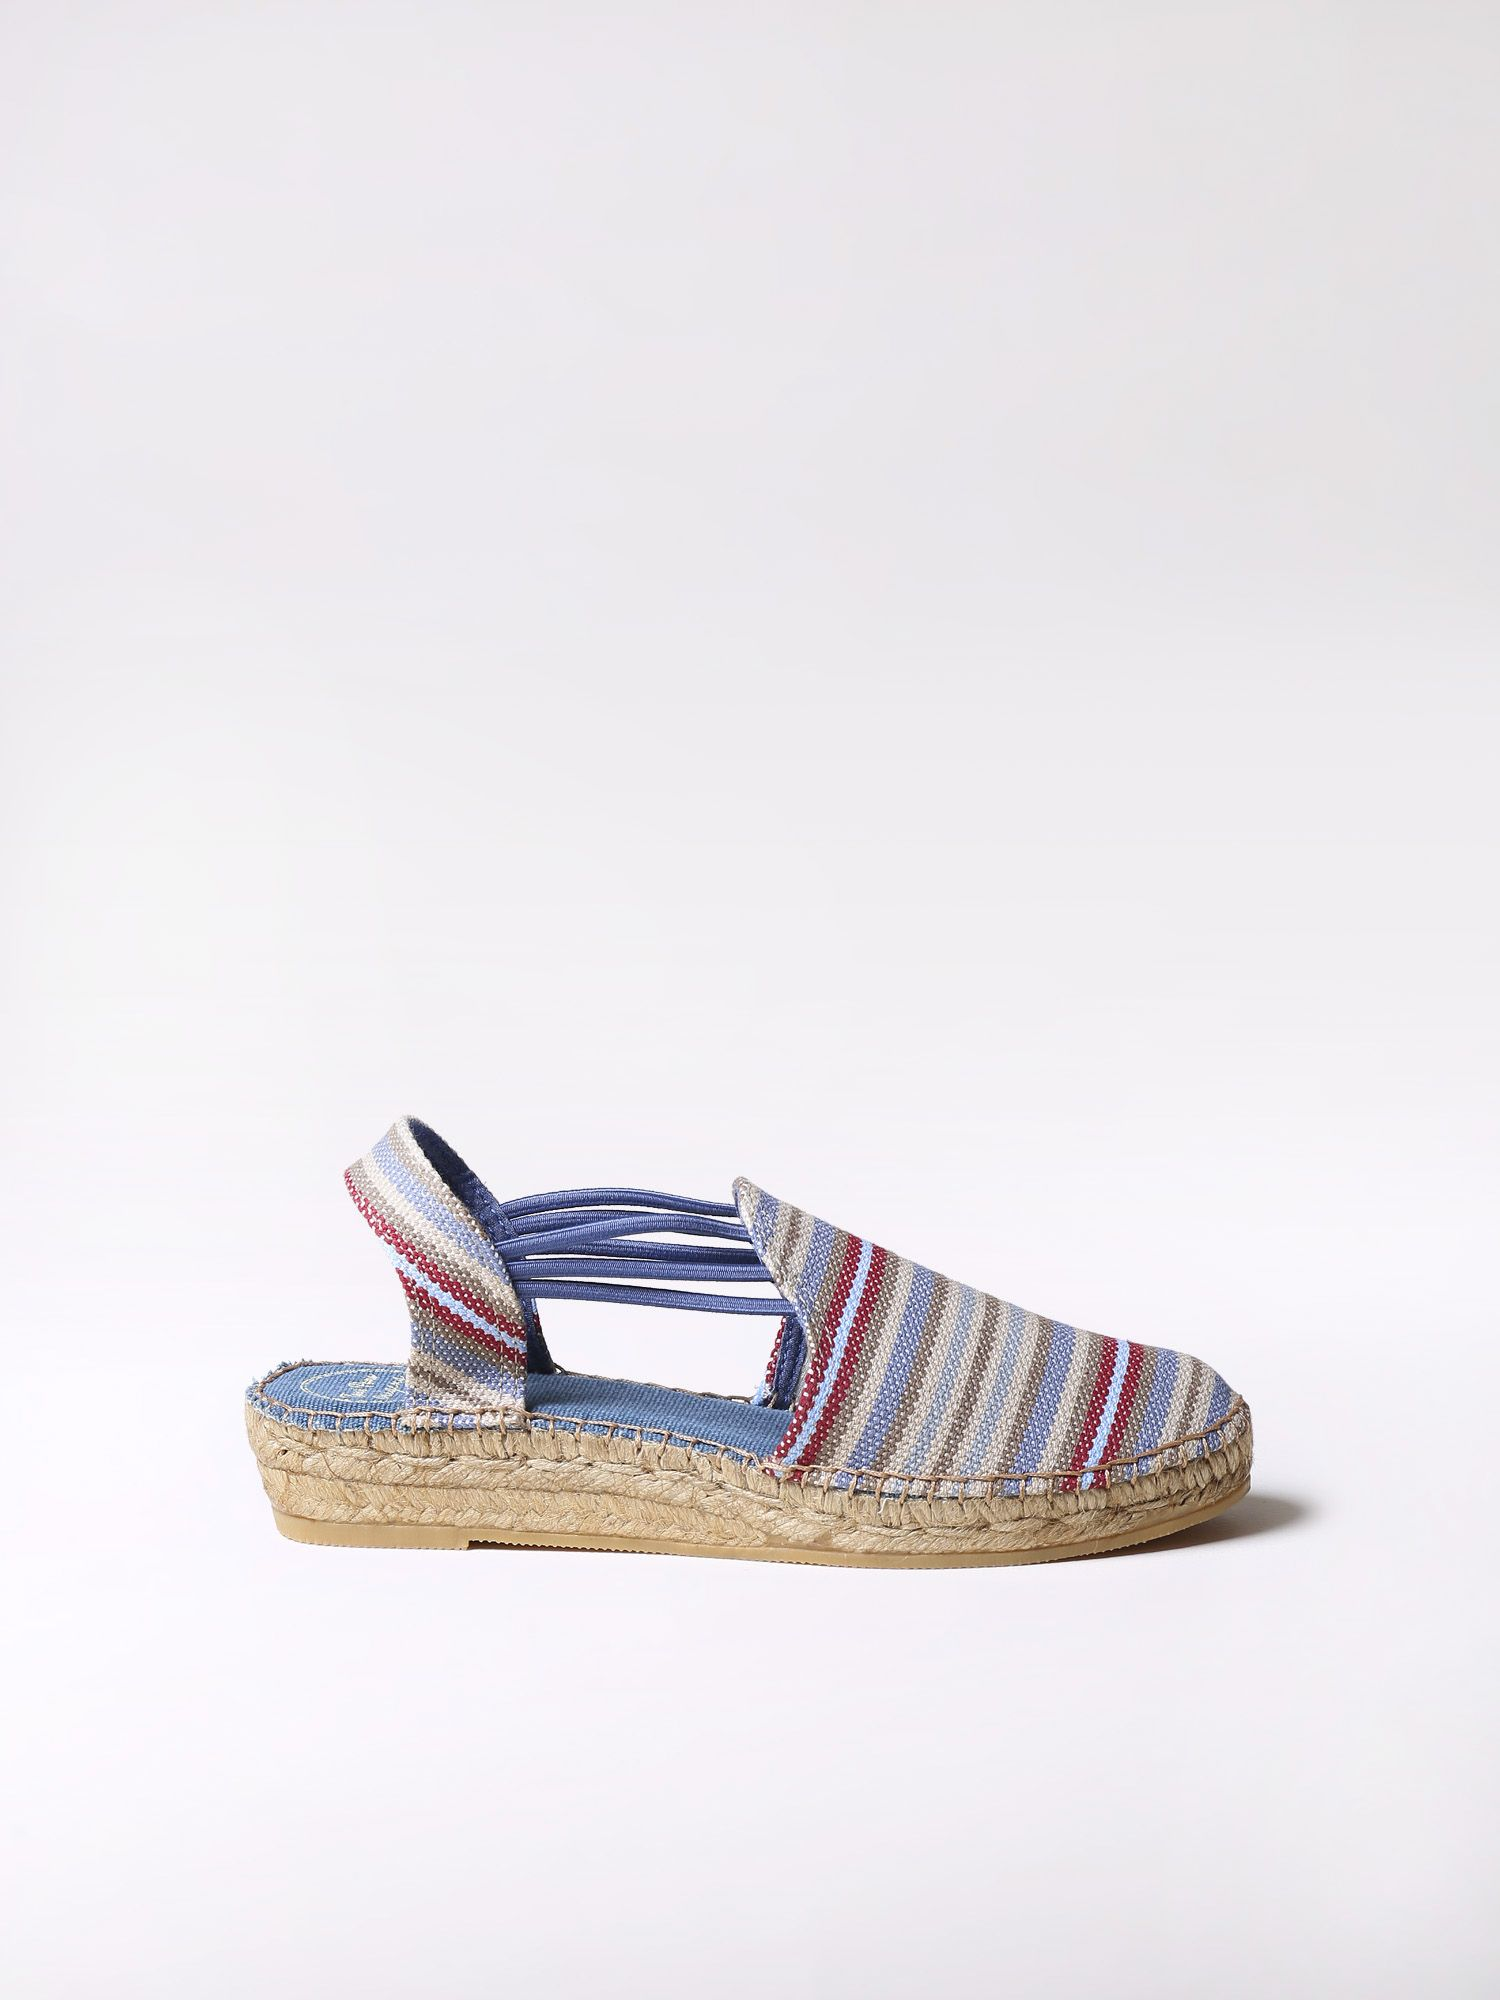 Striped espadrille - NORMA